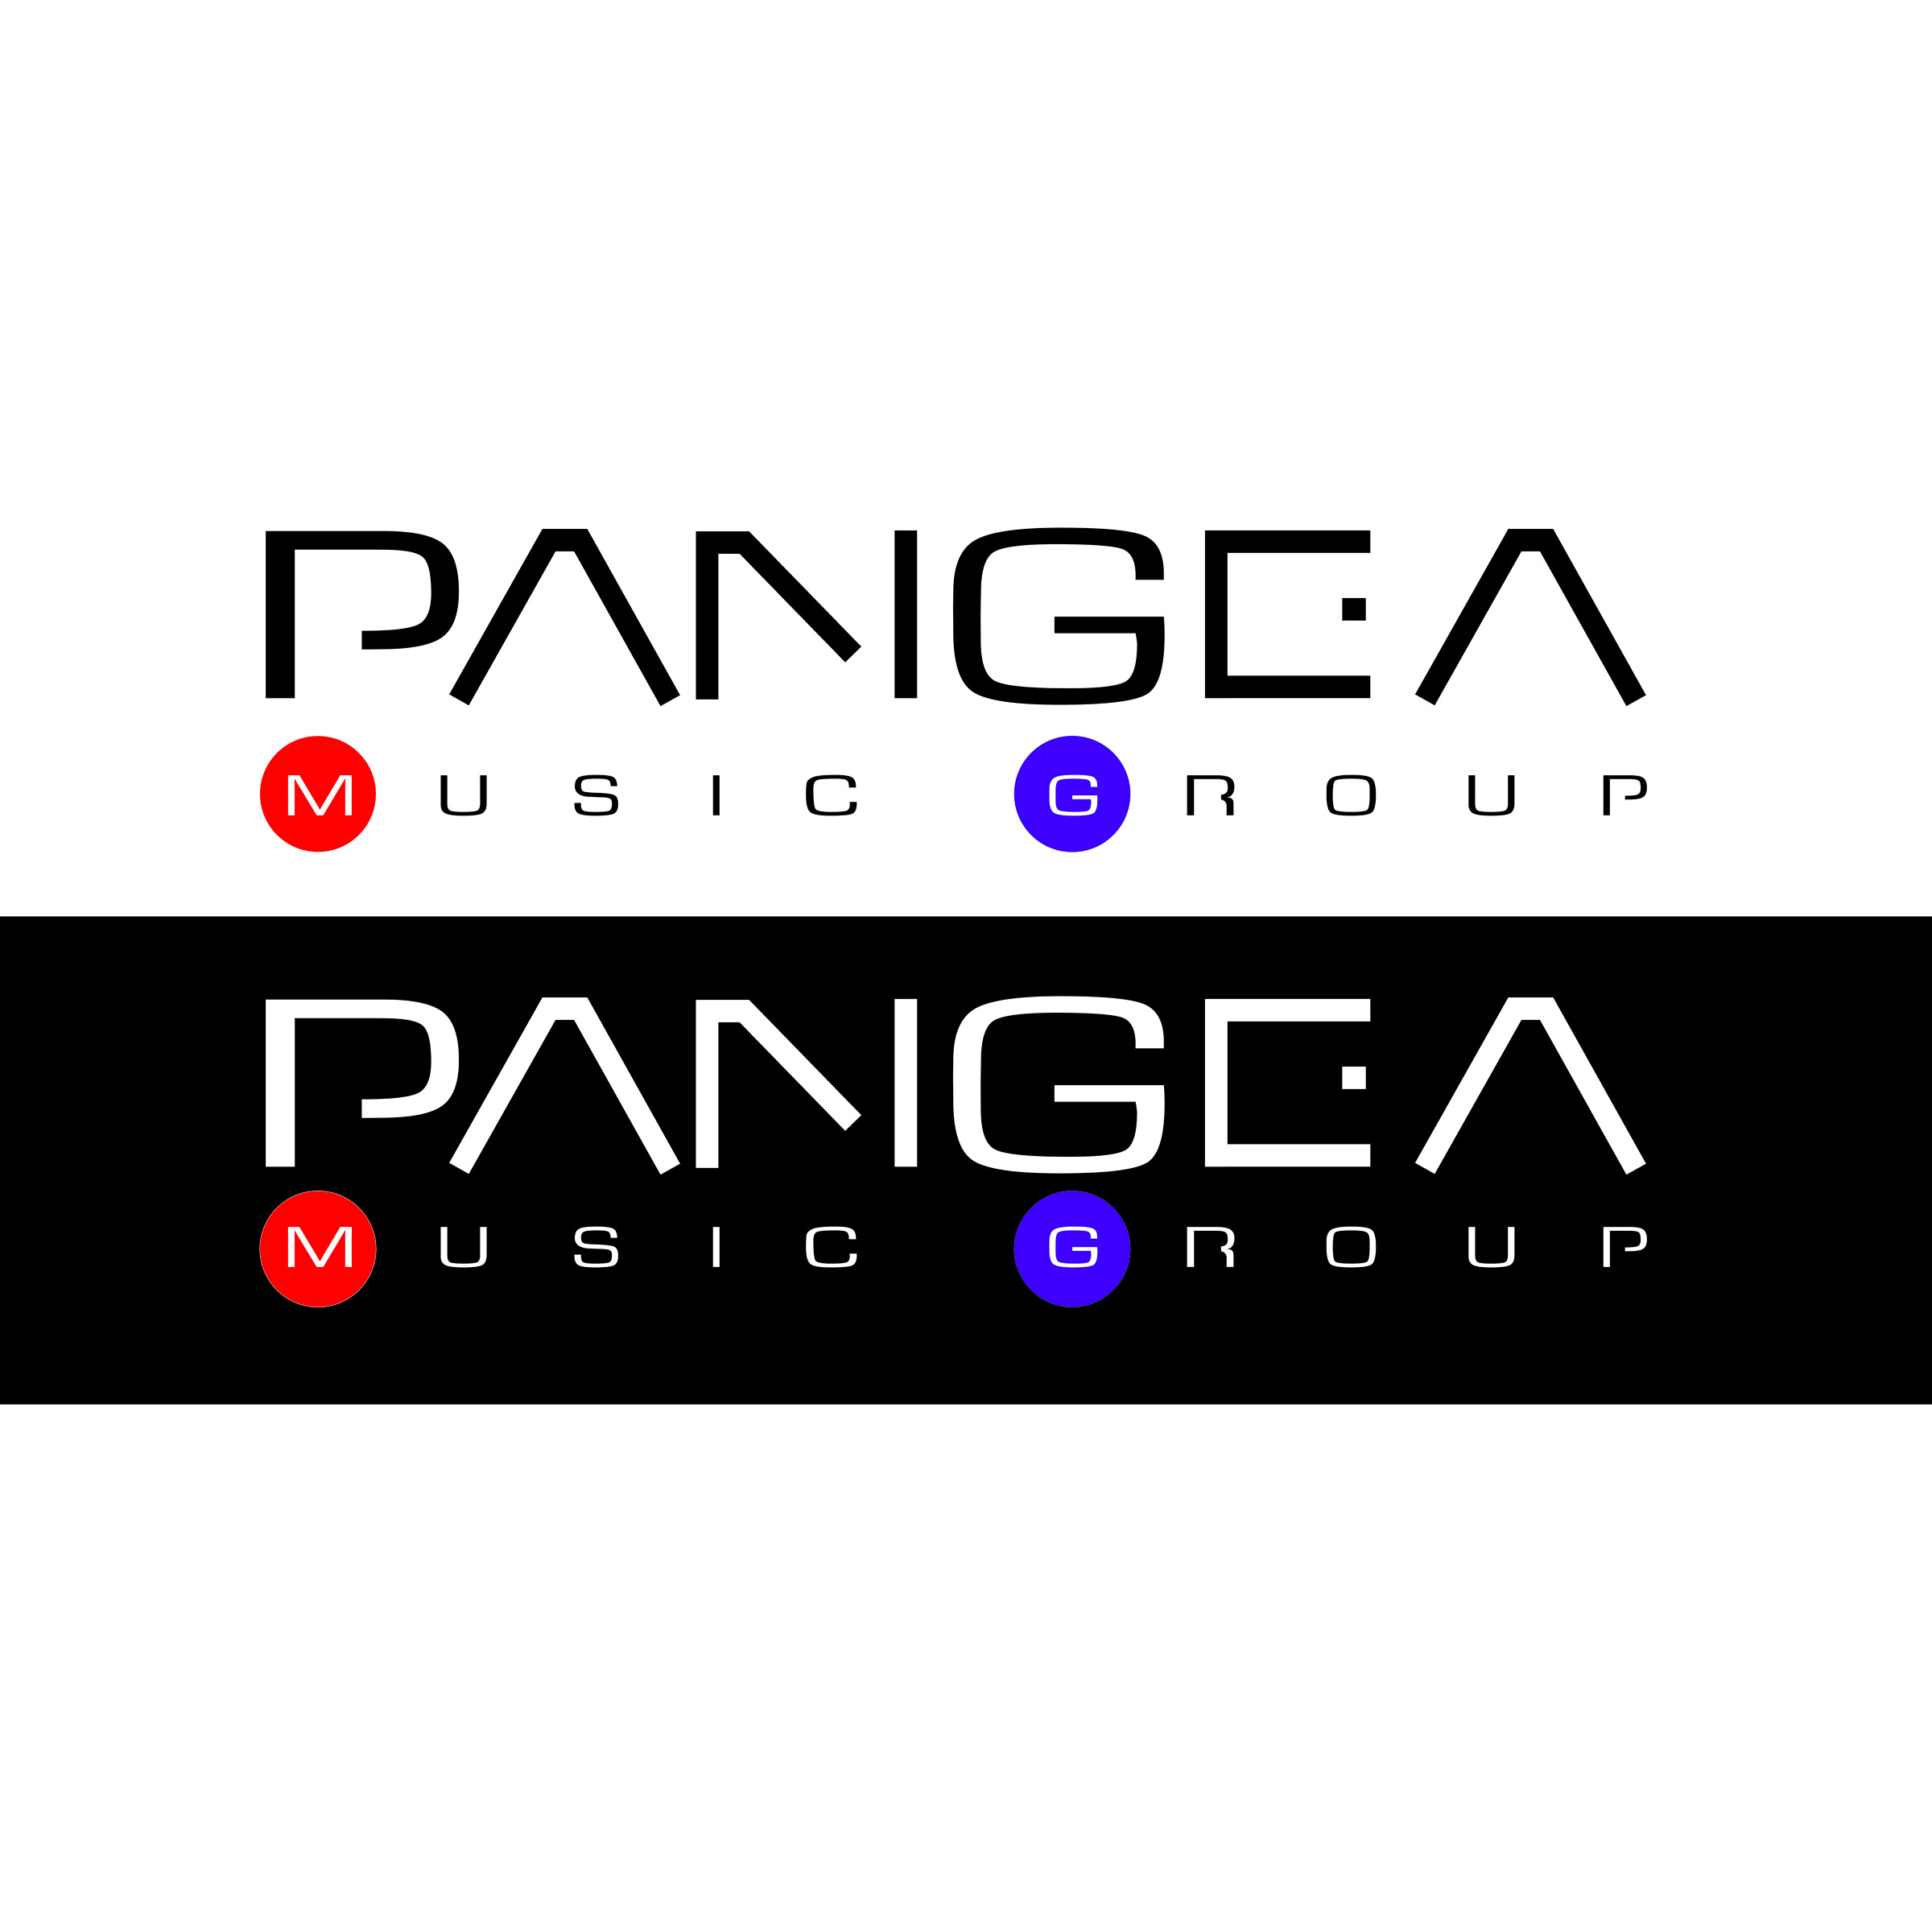 Pangea Music Group